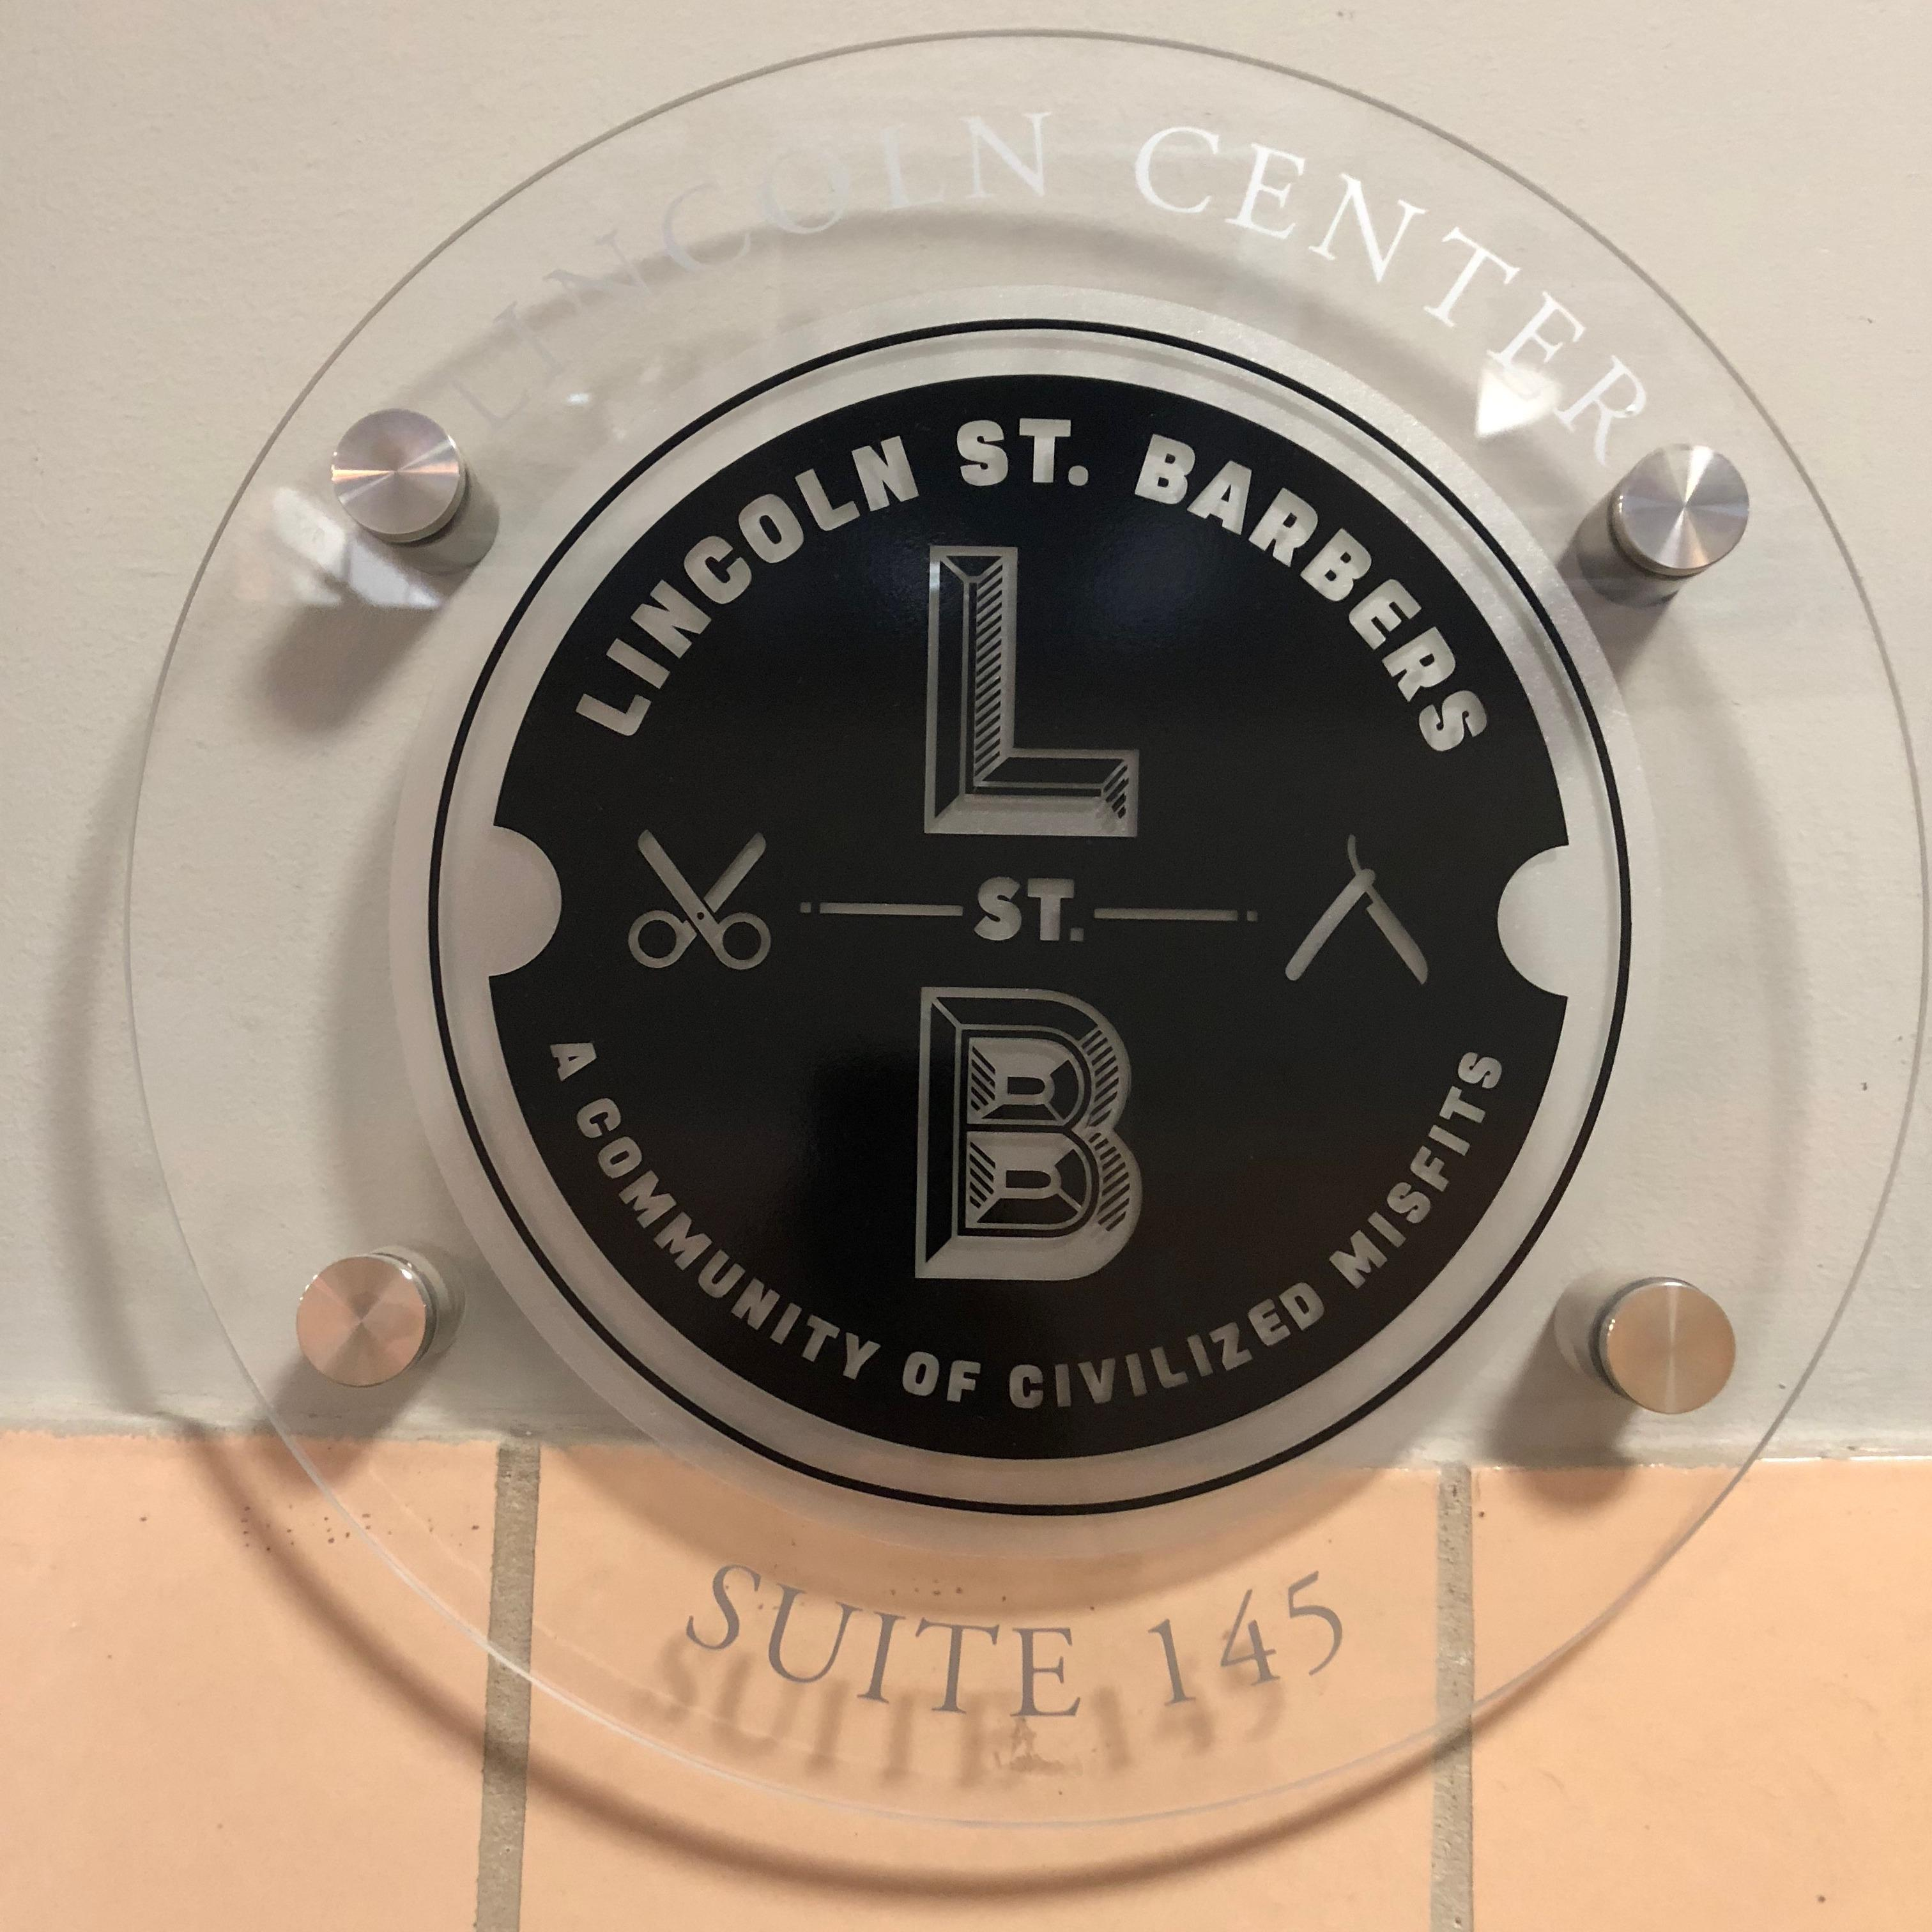 Lincoln St. Barbers